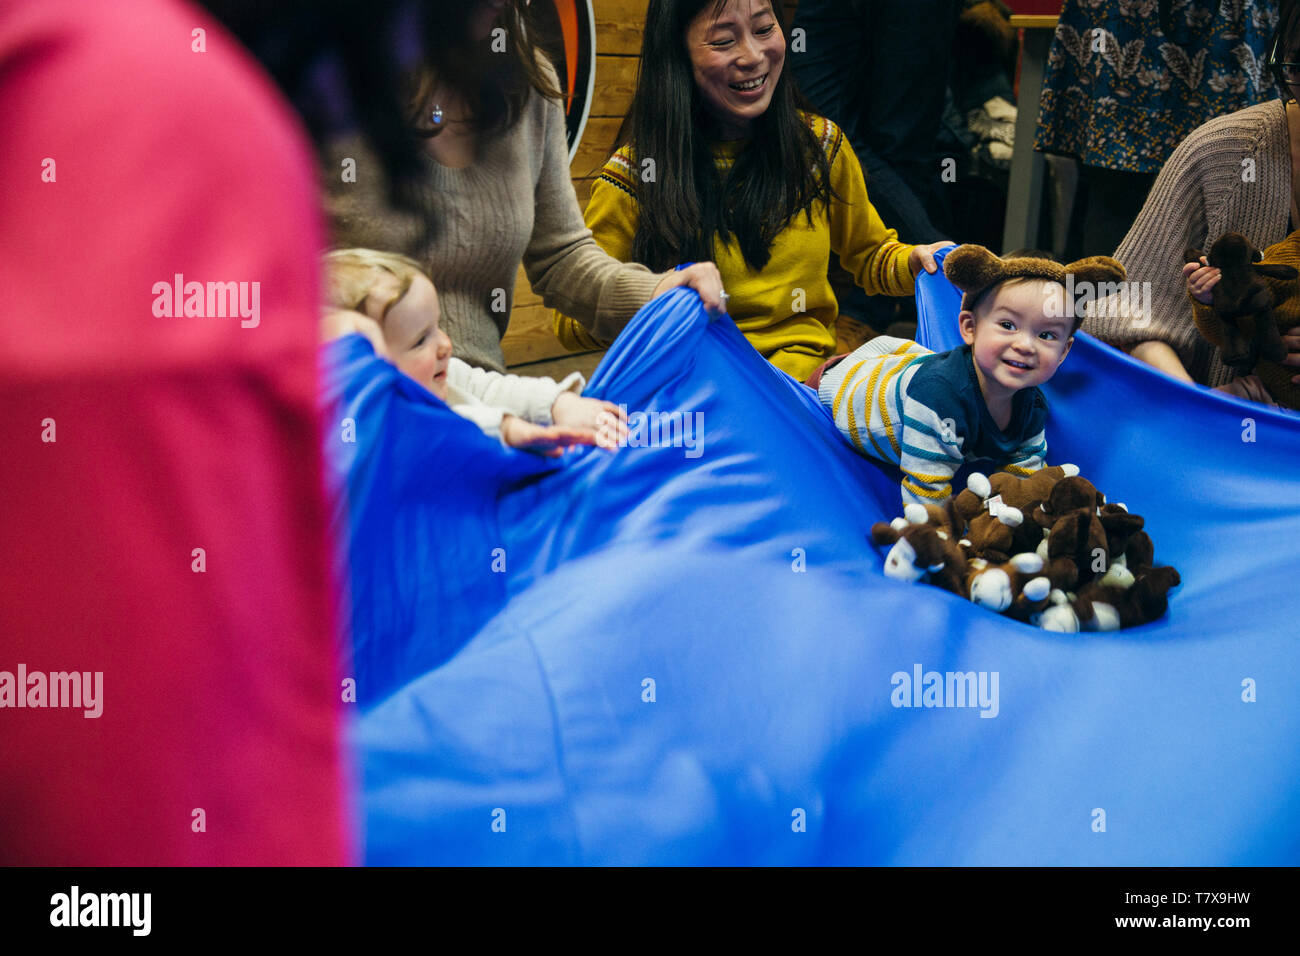 Little boy is having fun at playgroup woth his mother and other families. - Stock Image